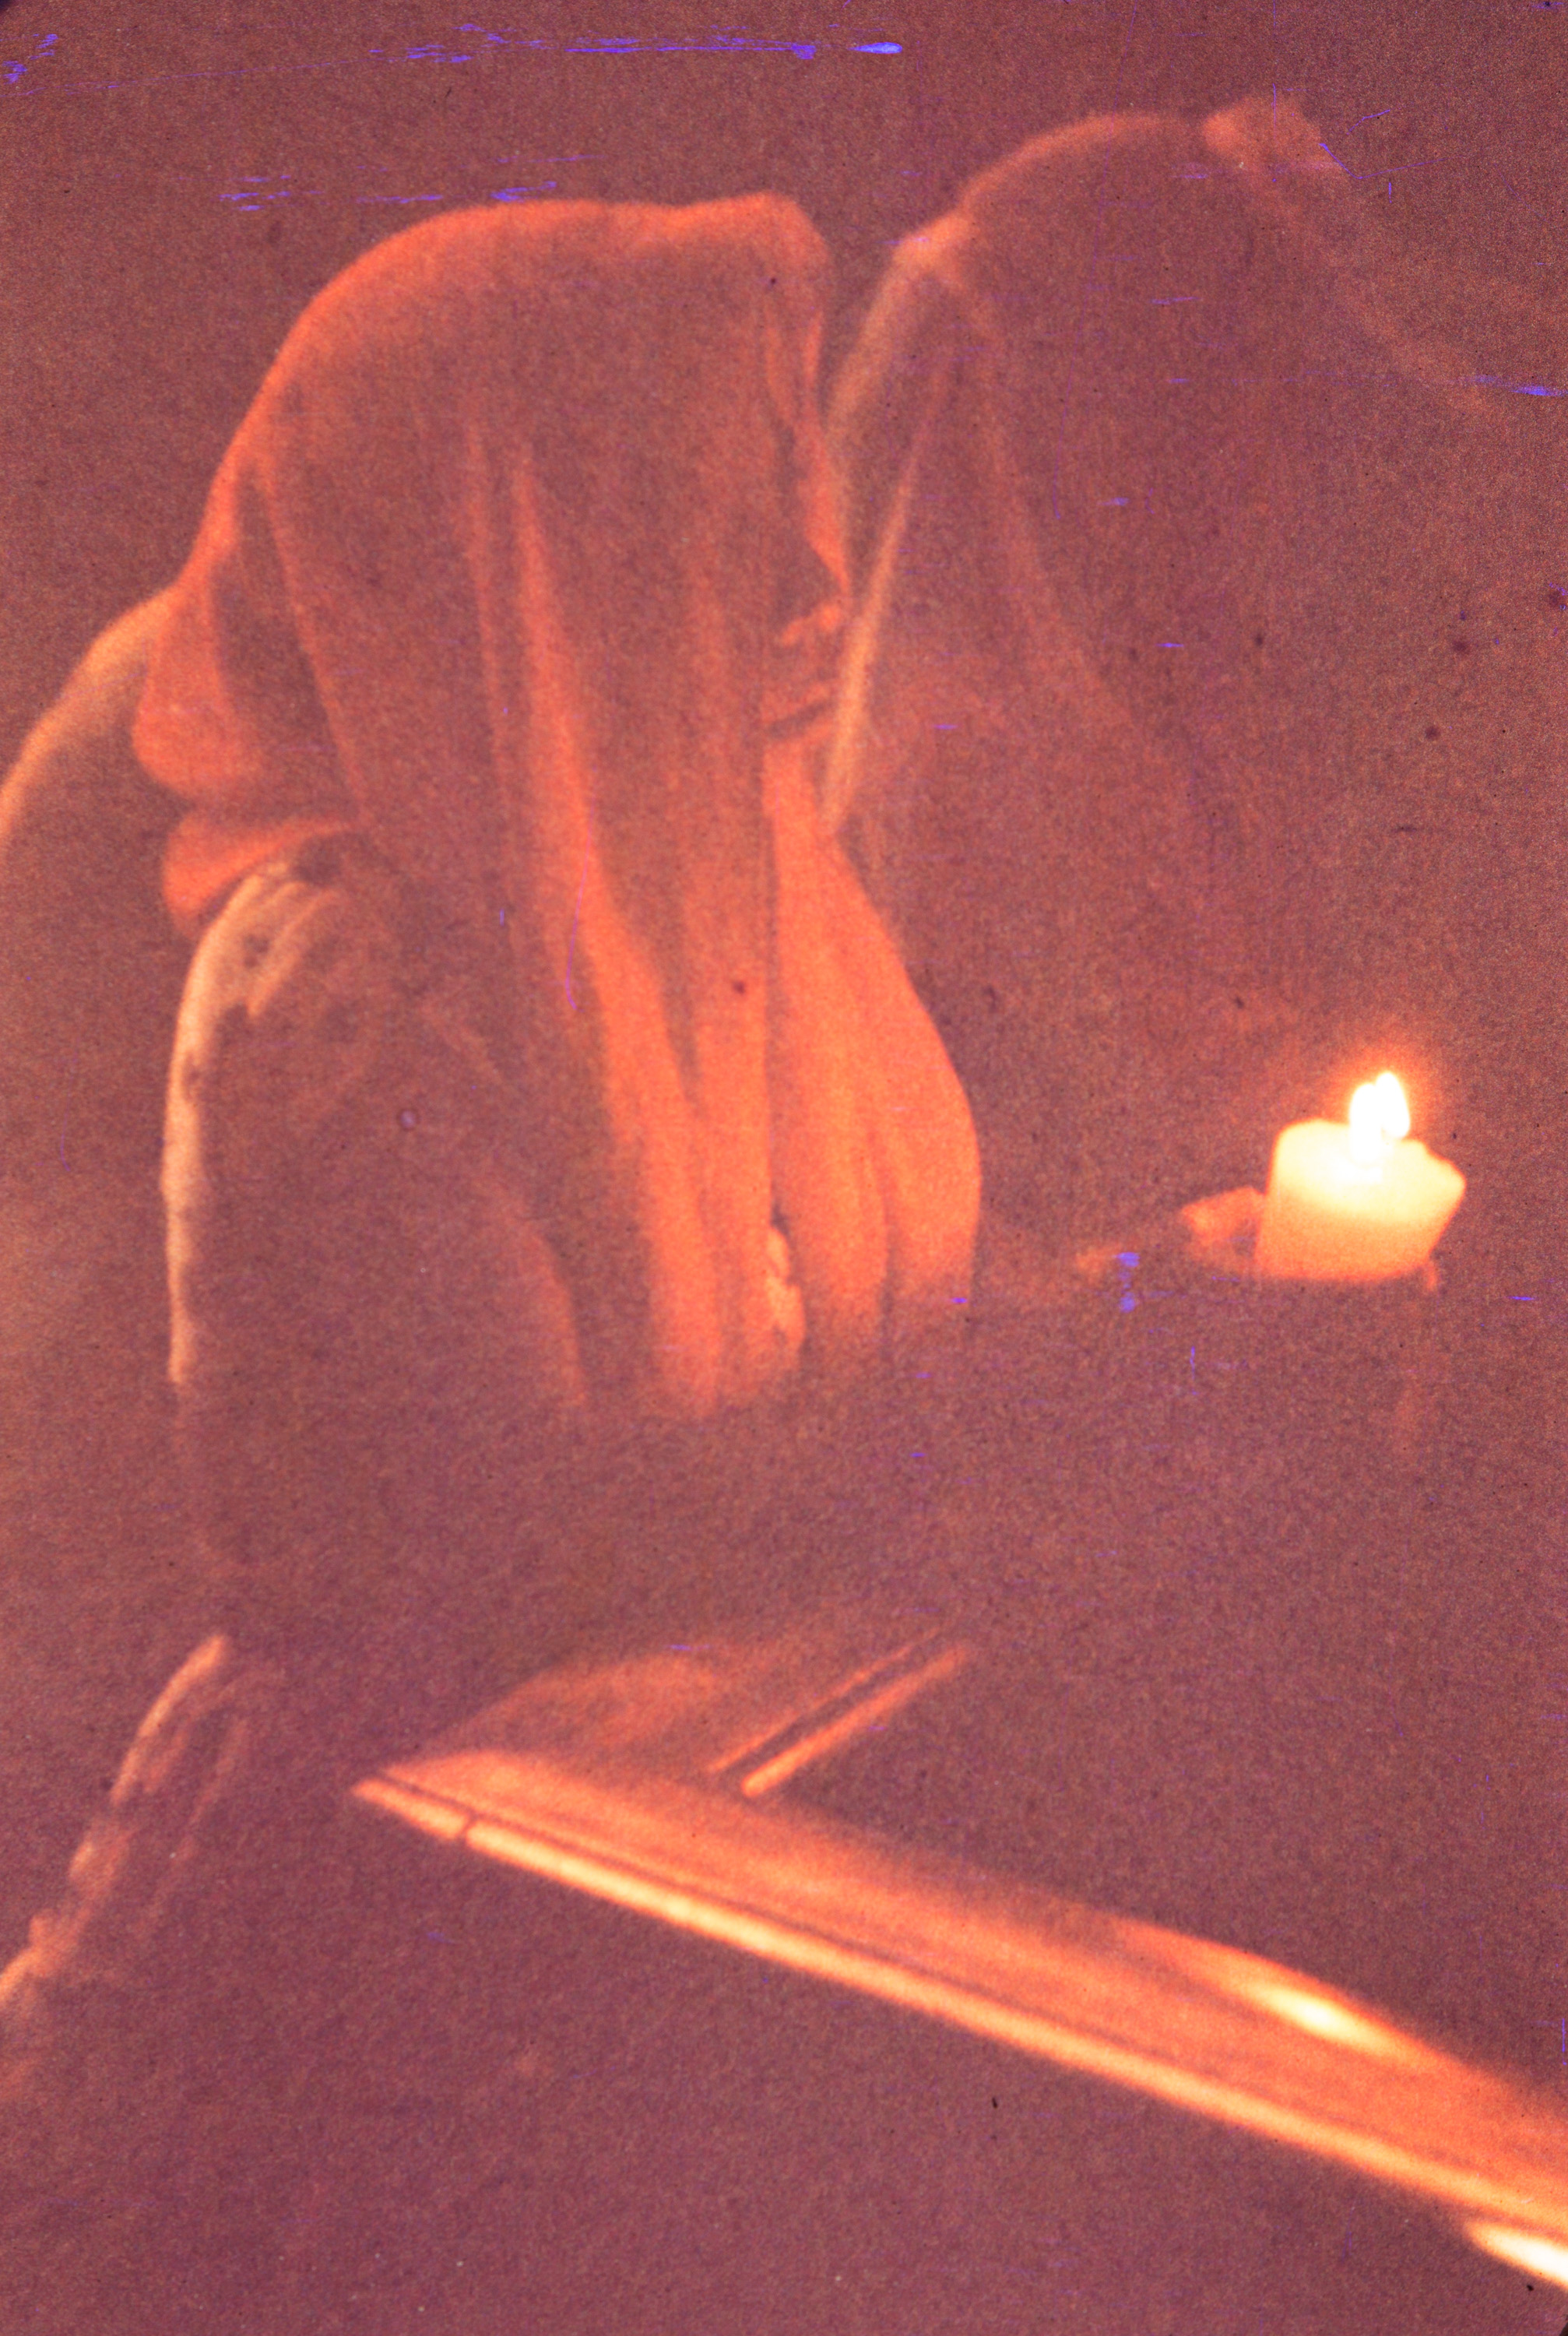 Praying with candle, Mexico, 1957